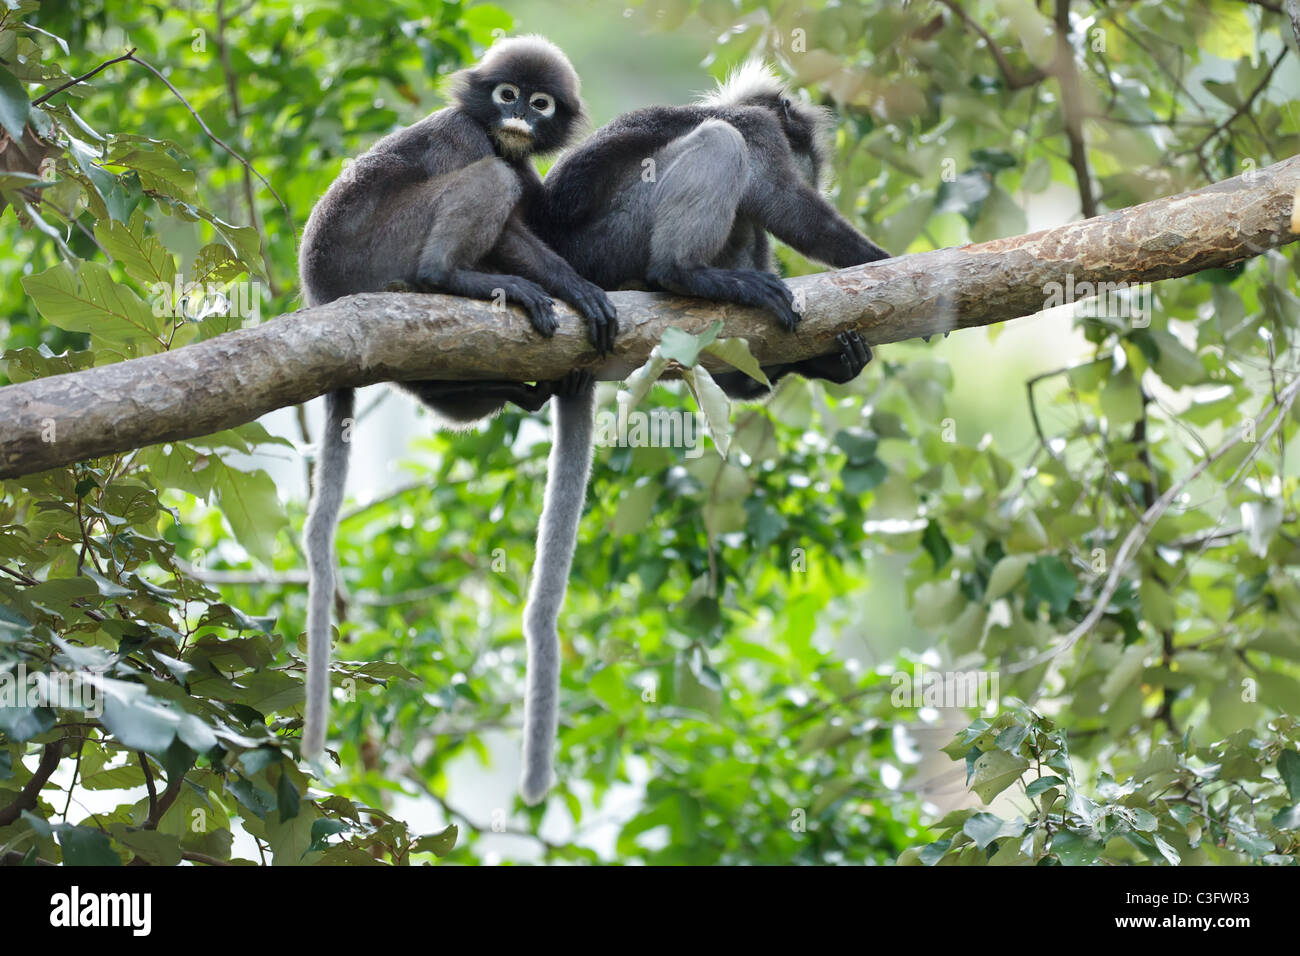 two spectacled langur (Trachypithecus obscurus) on tree branch, thailand - Stock Image